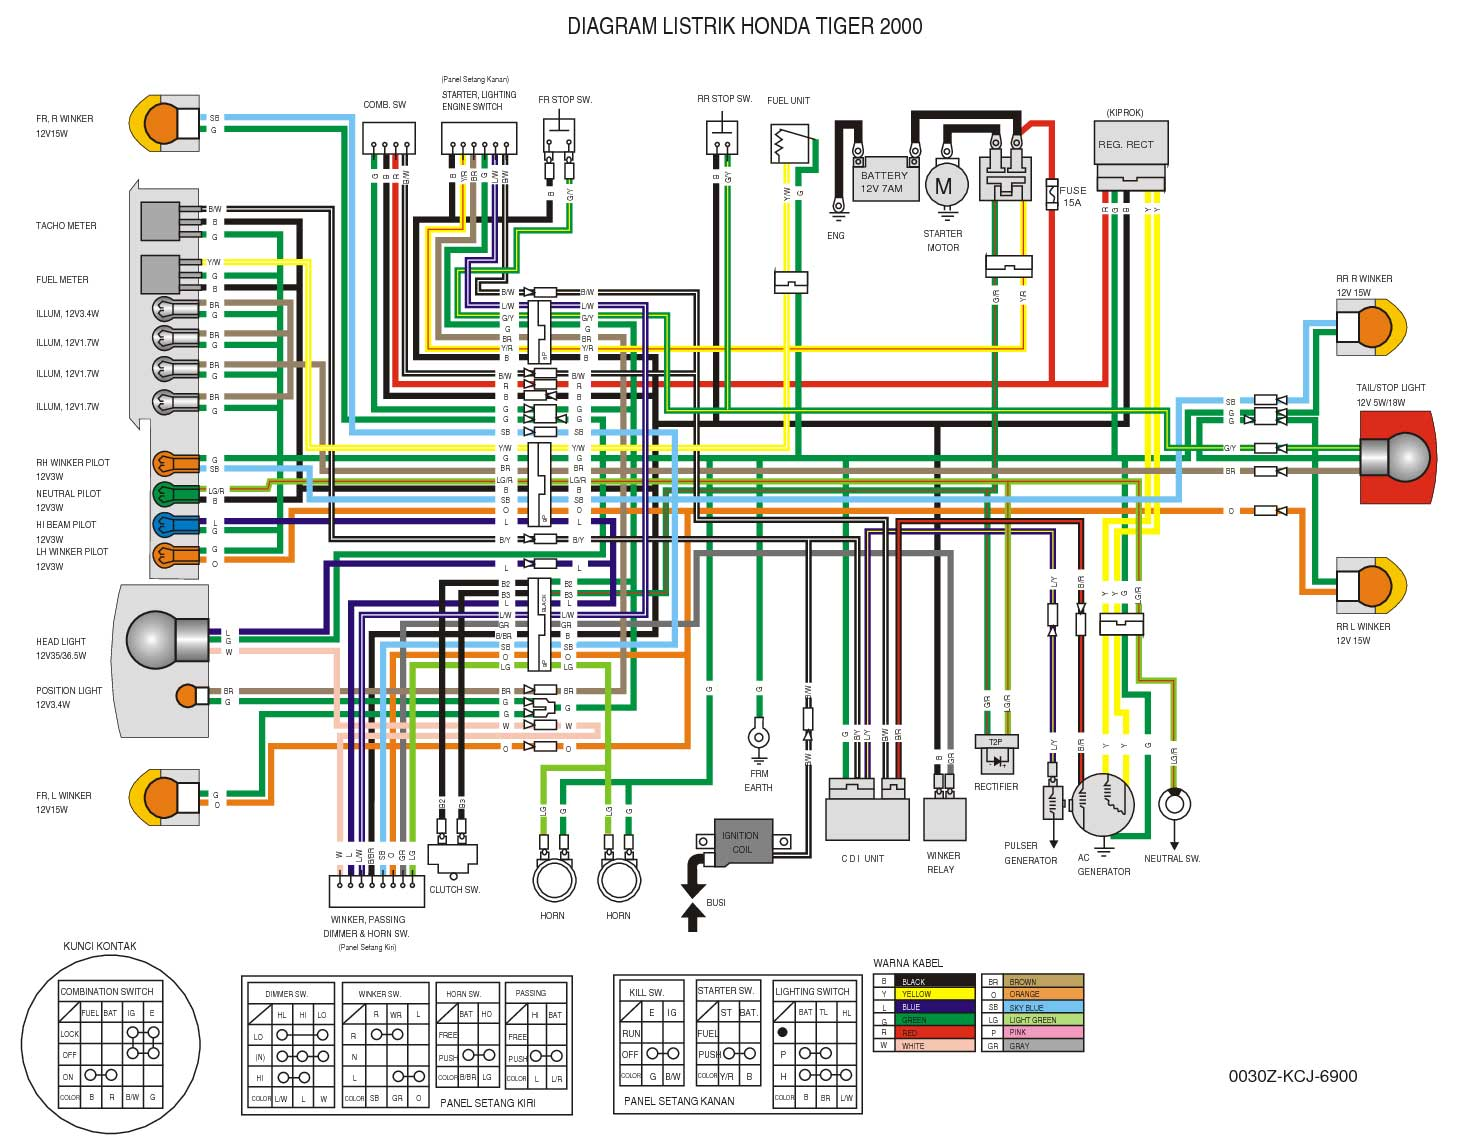 Kymco Wiring Diagram Enthusiast Diagrams Agility 125 Oh Honda Xl125 Replica Mxu 500